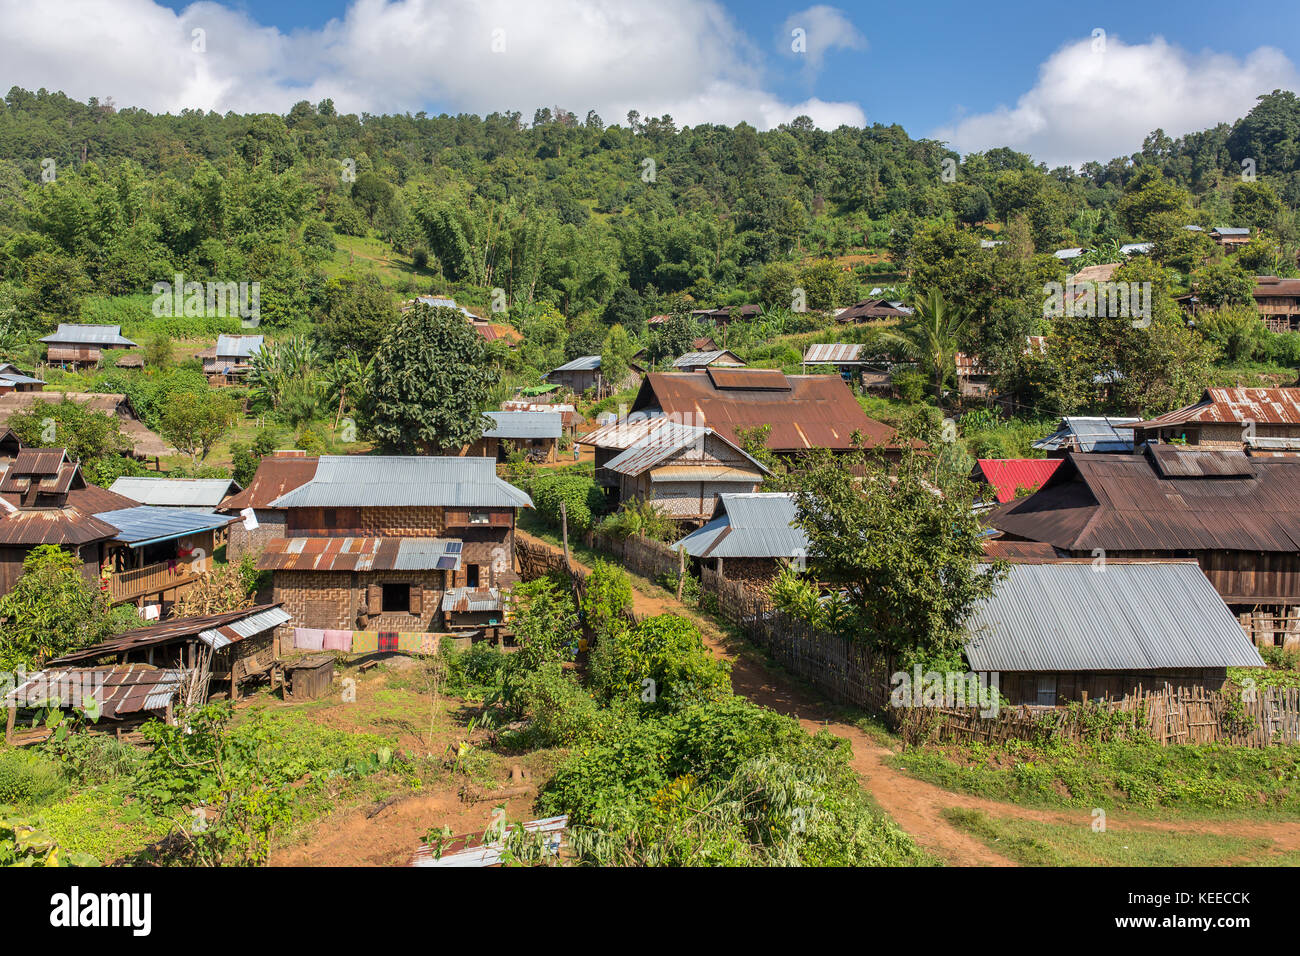 Traditional village landscape in Laos - Stock Image